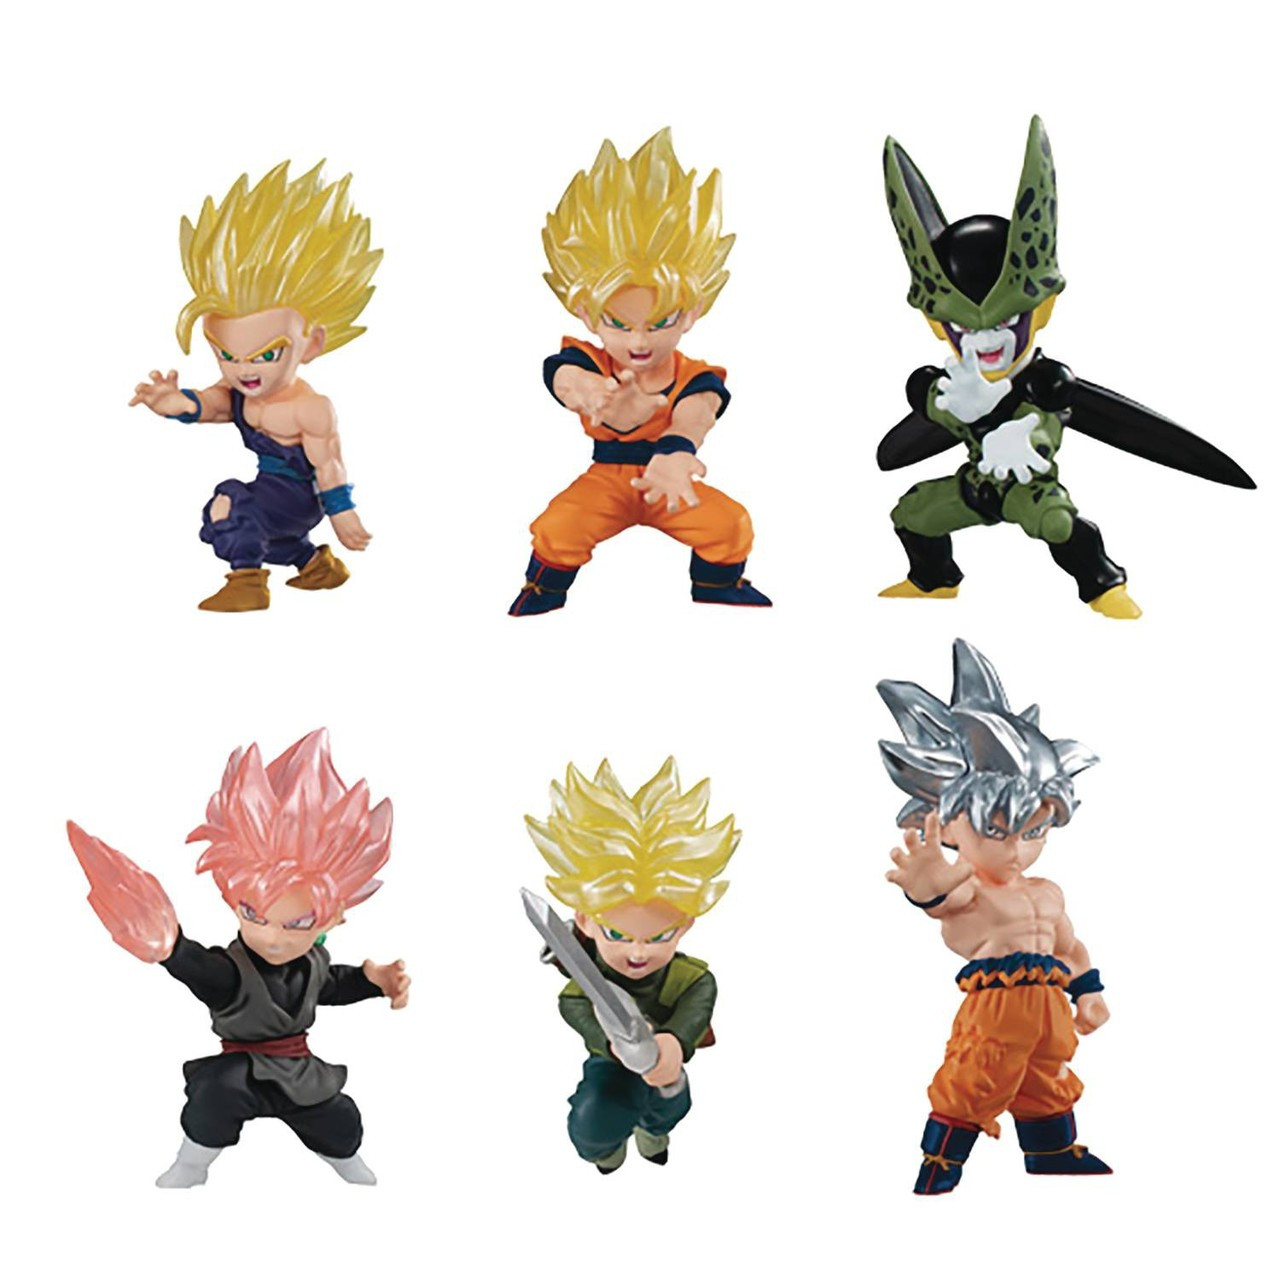 Dragon Ball Z Figures Mini Bandai Japan Import Anime Choose One